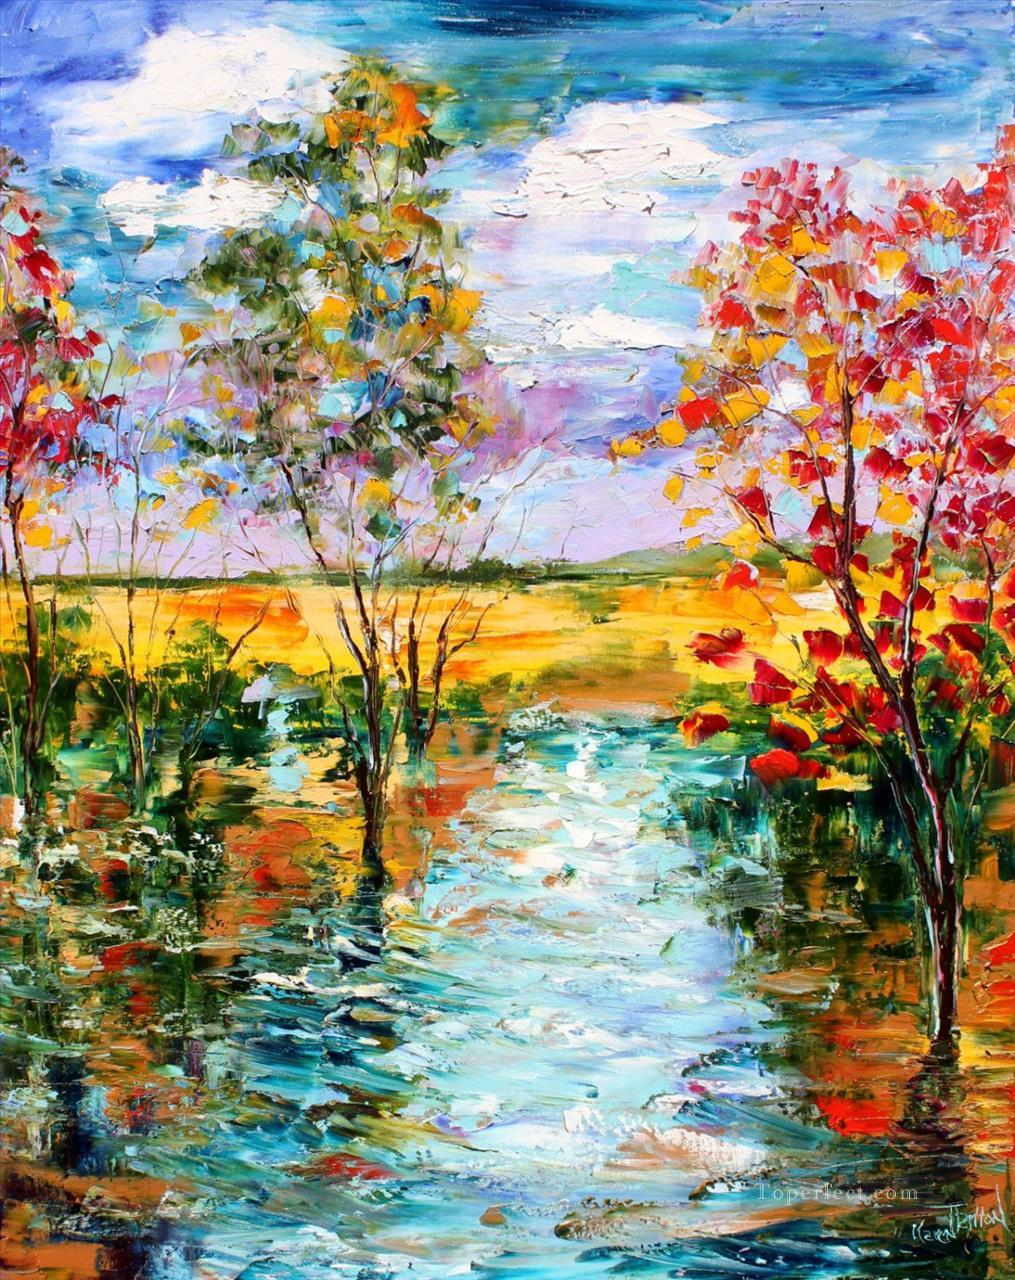 First light of day scenery painting in oil for sale for Oil painting scenery